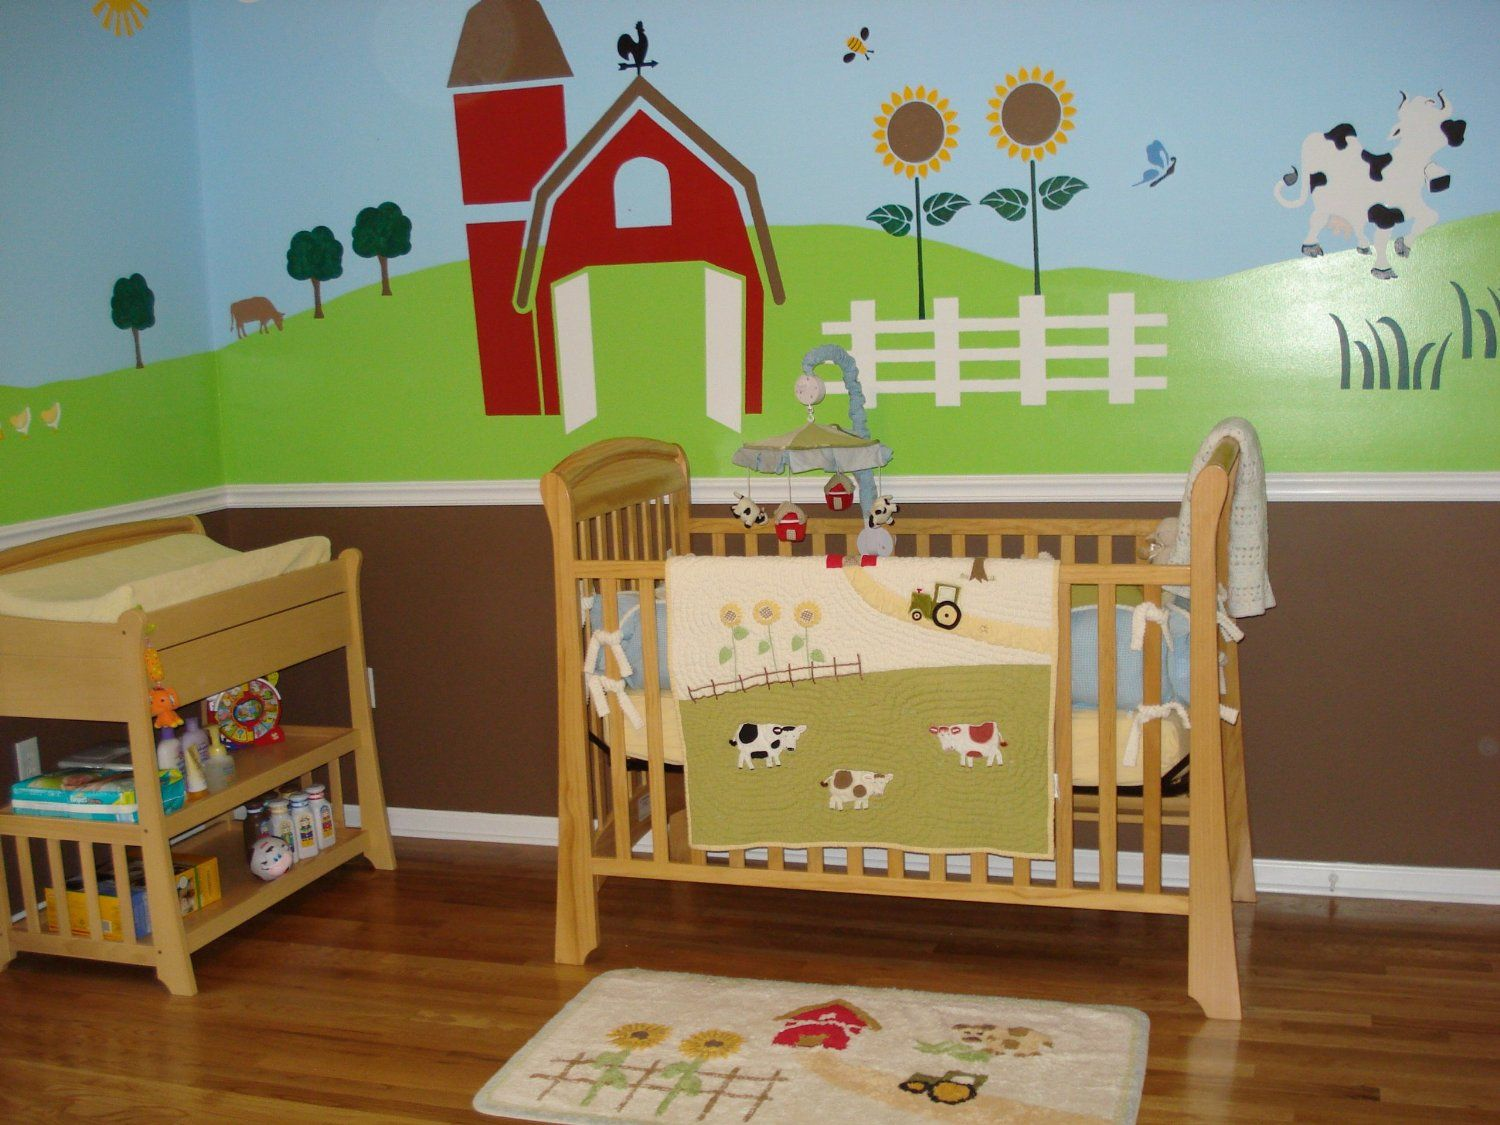 Amazon.com   Nursery Wall Mural   Farm Animal Wall Mural Stencil Kit For  Painting